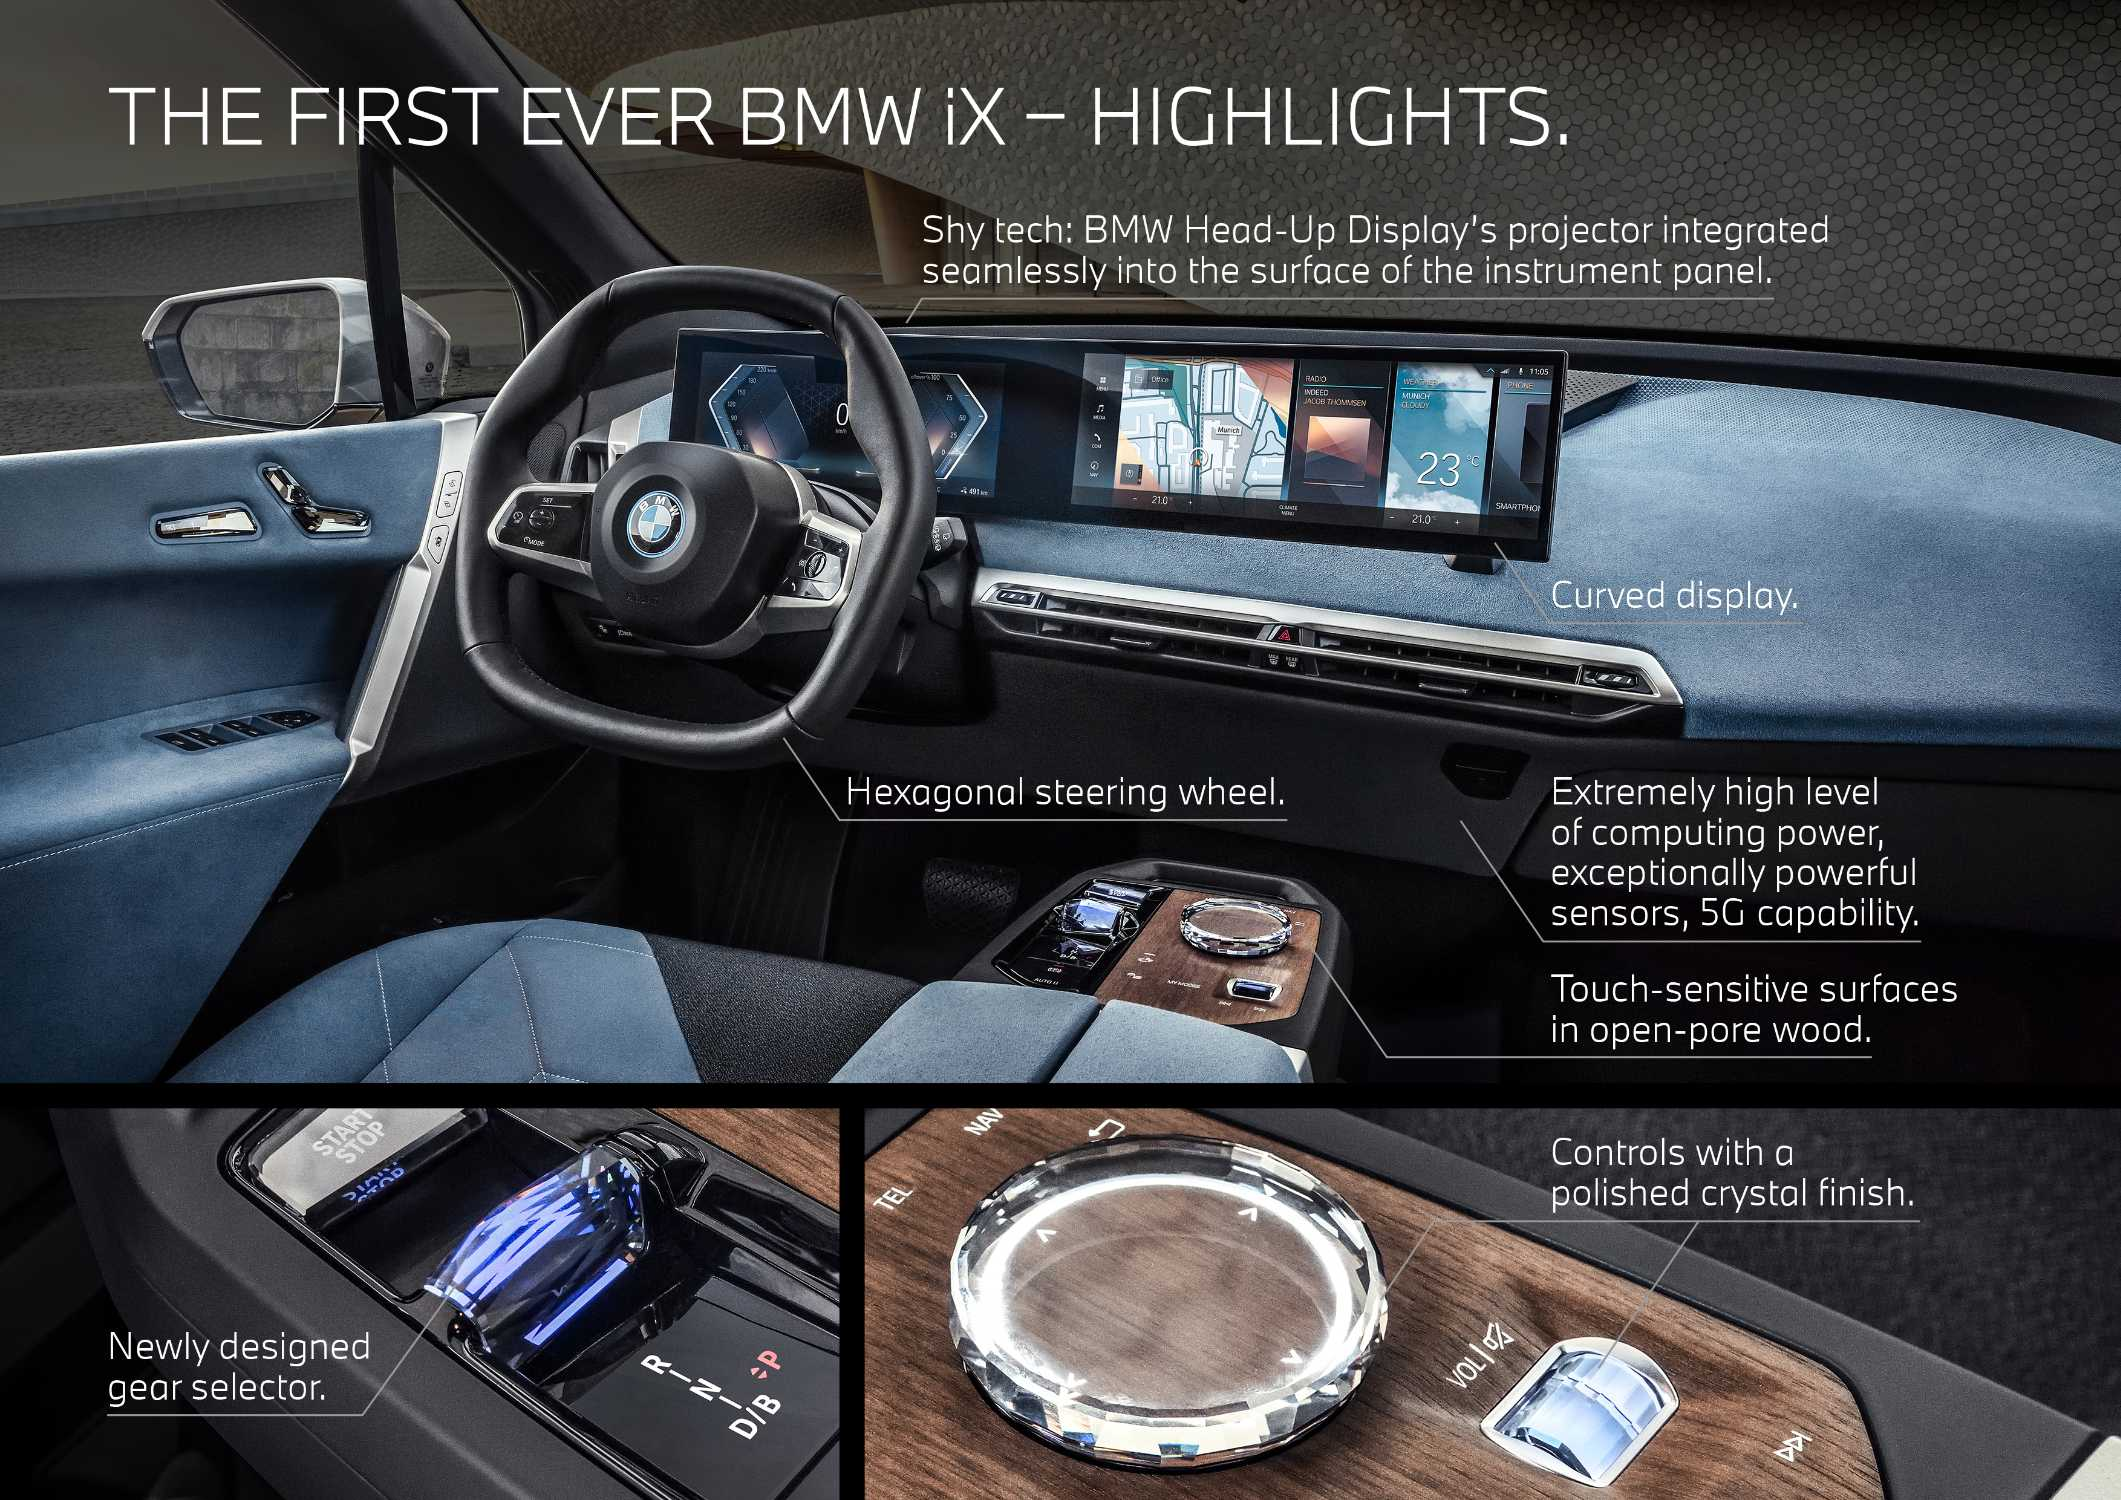 The first ever BMW iX (11/2020).